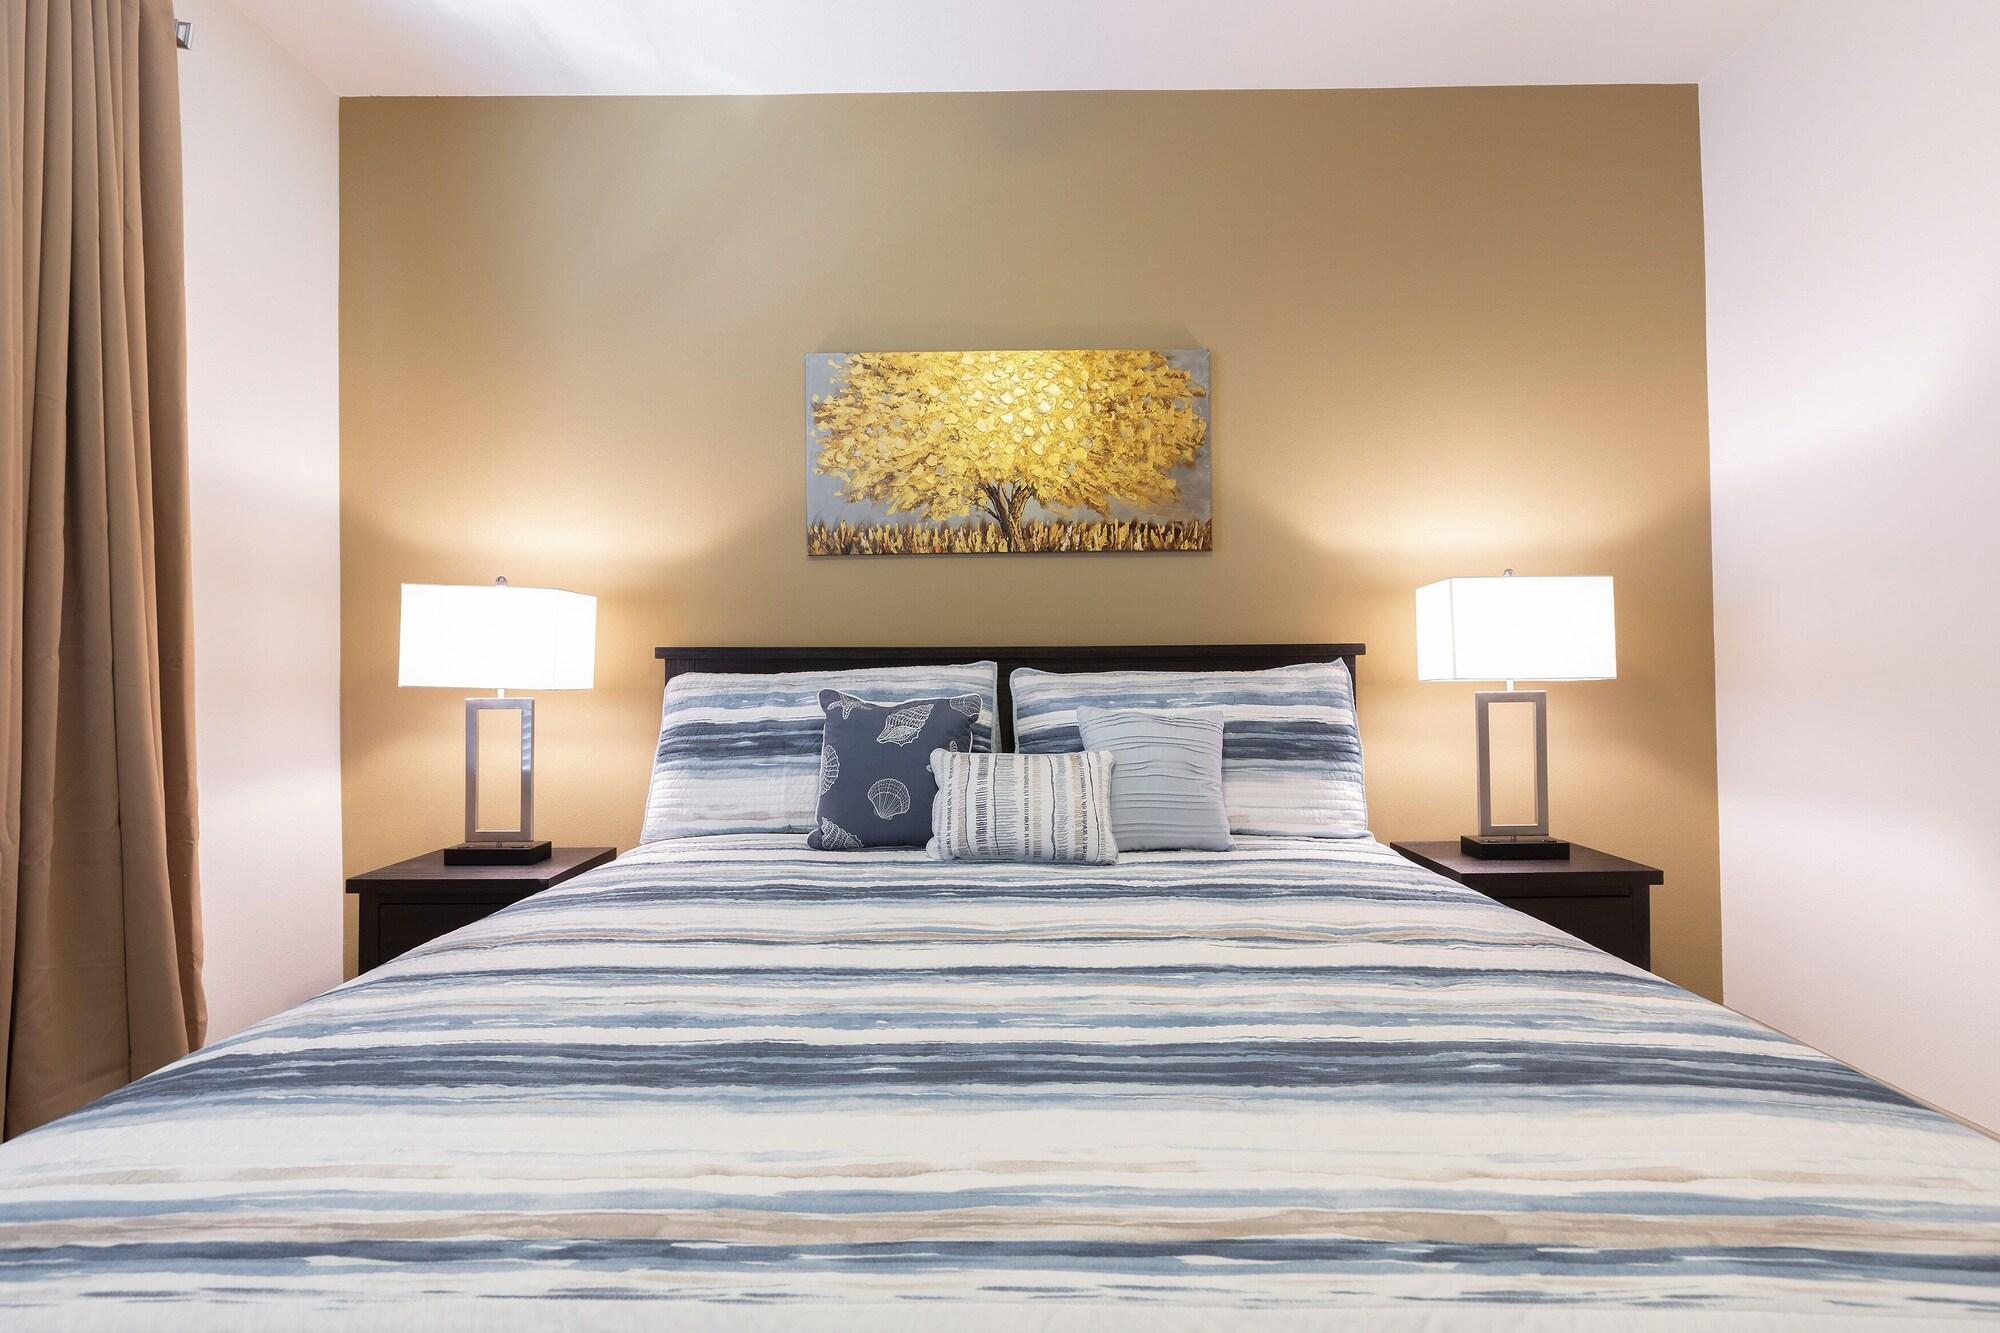 Luxurious King Sized BED Midtown Fully Equipped Condo